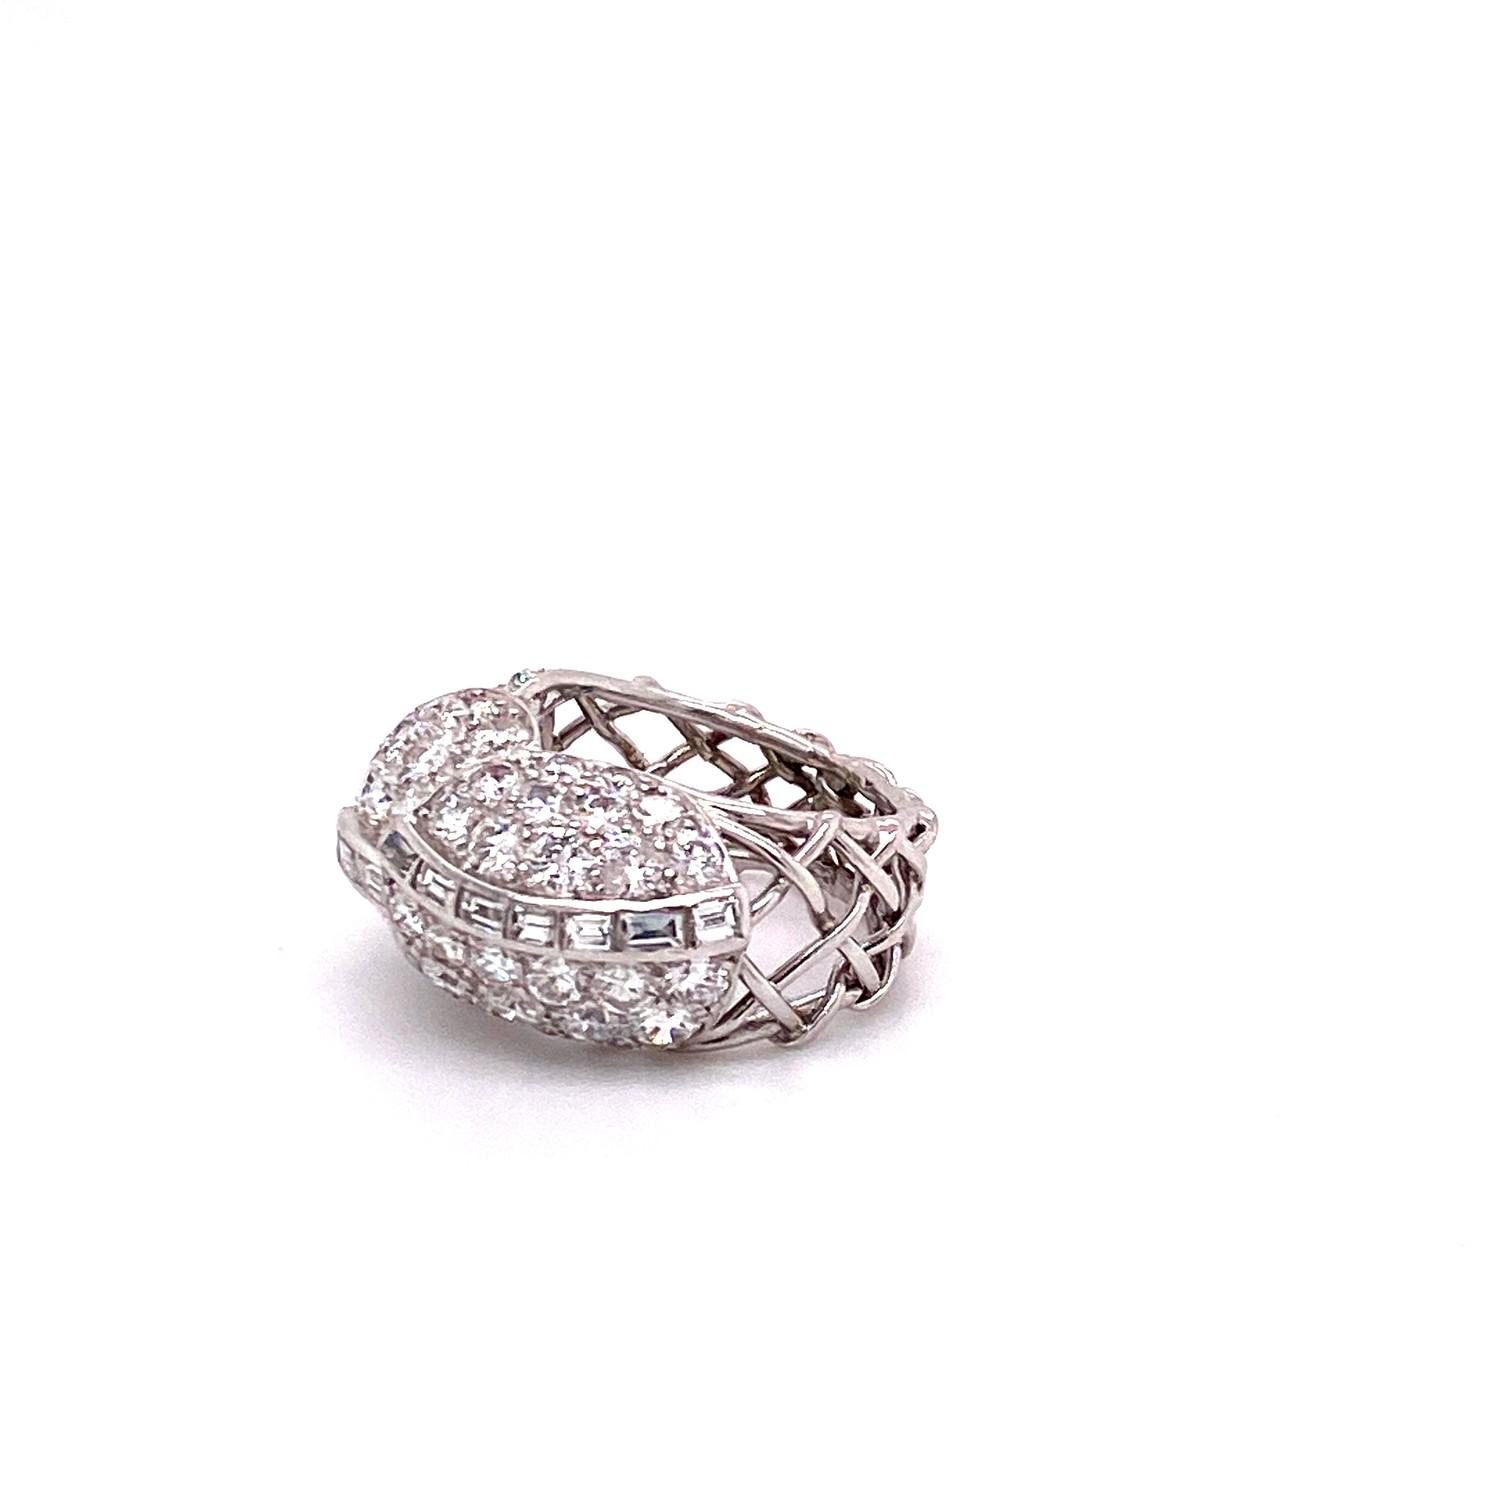 A 1950's Cartier Cocktail Ring, Cartier baguette and brilliant cut pave set dome top bombe ring - Image 6 of 8